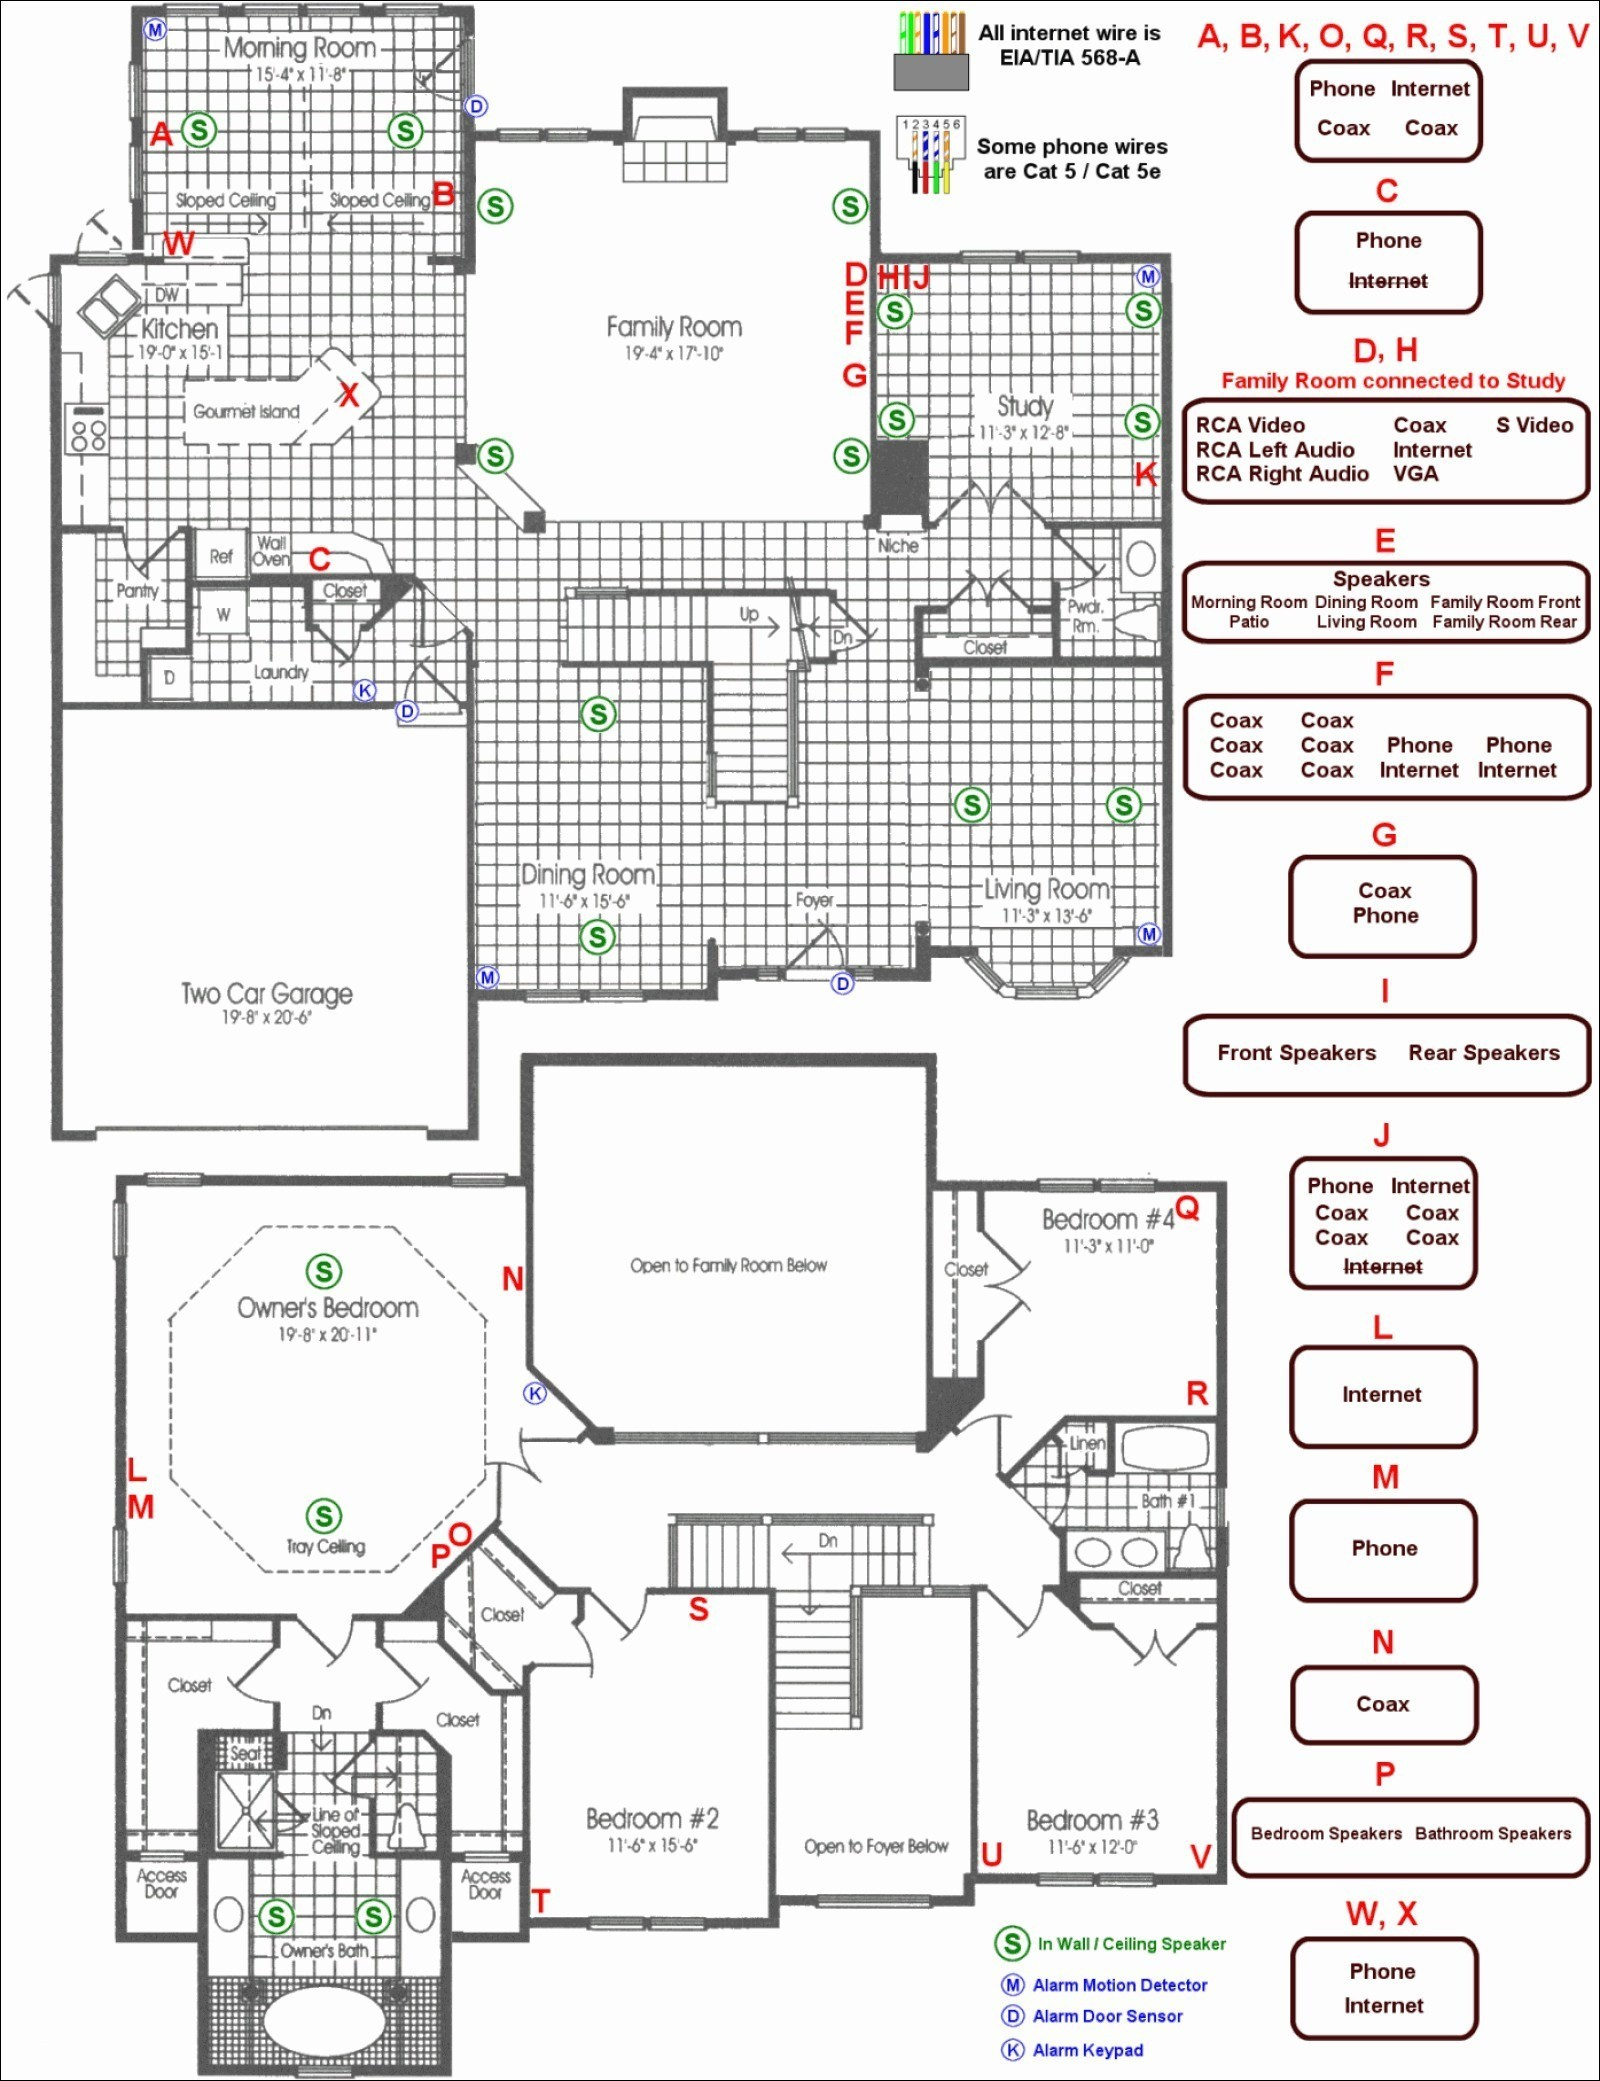 Wiring Diagram For Home Lights Simple Home Electrical Wiring Diagrams